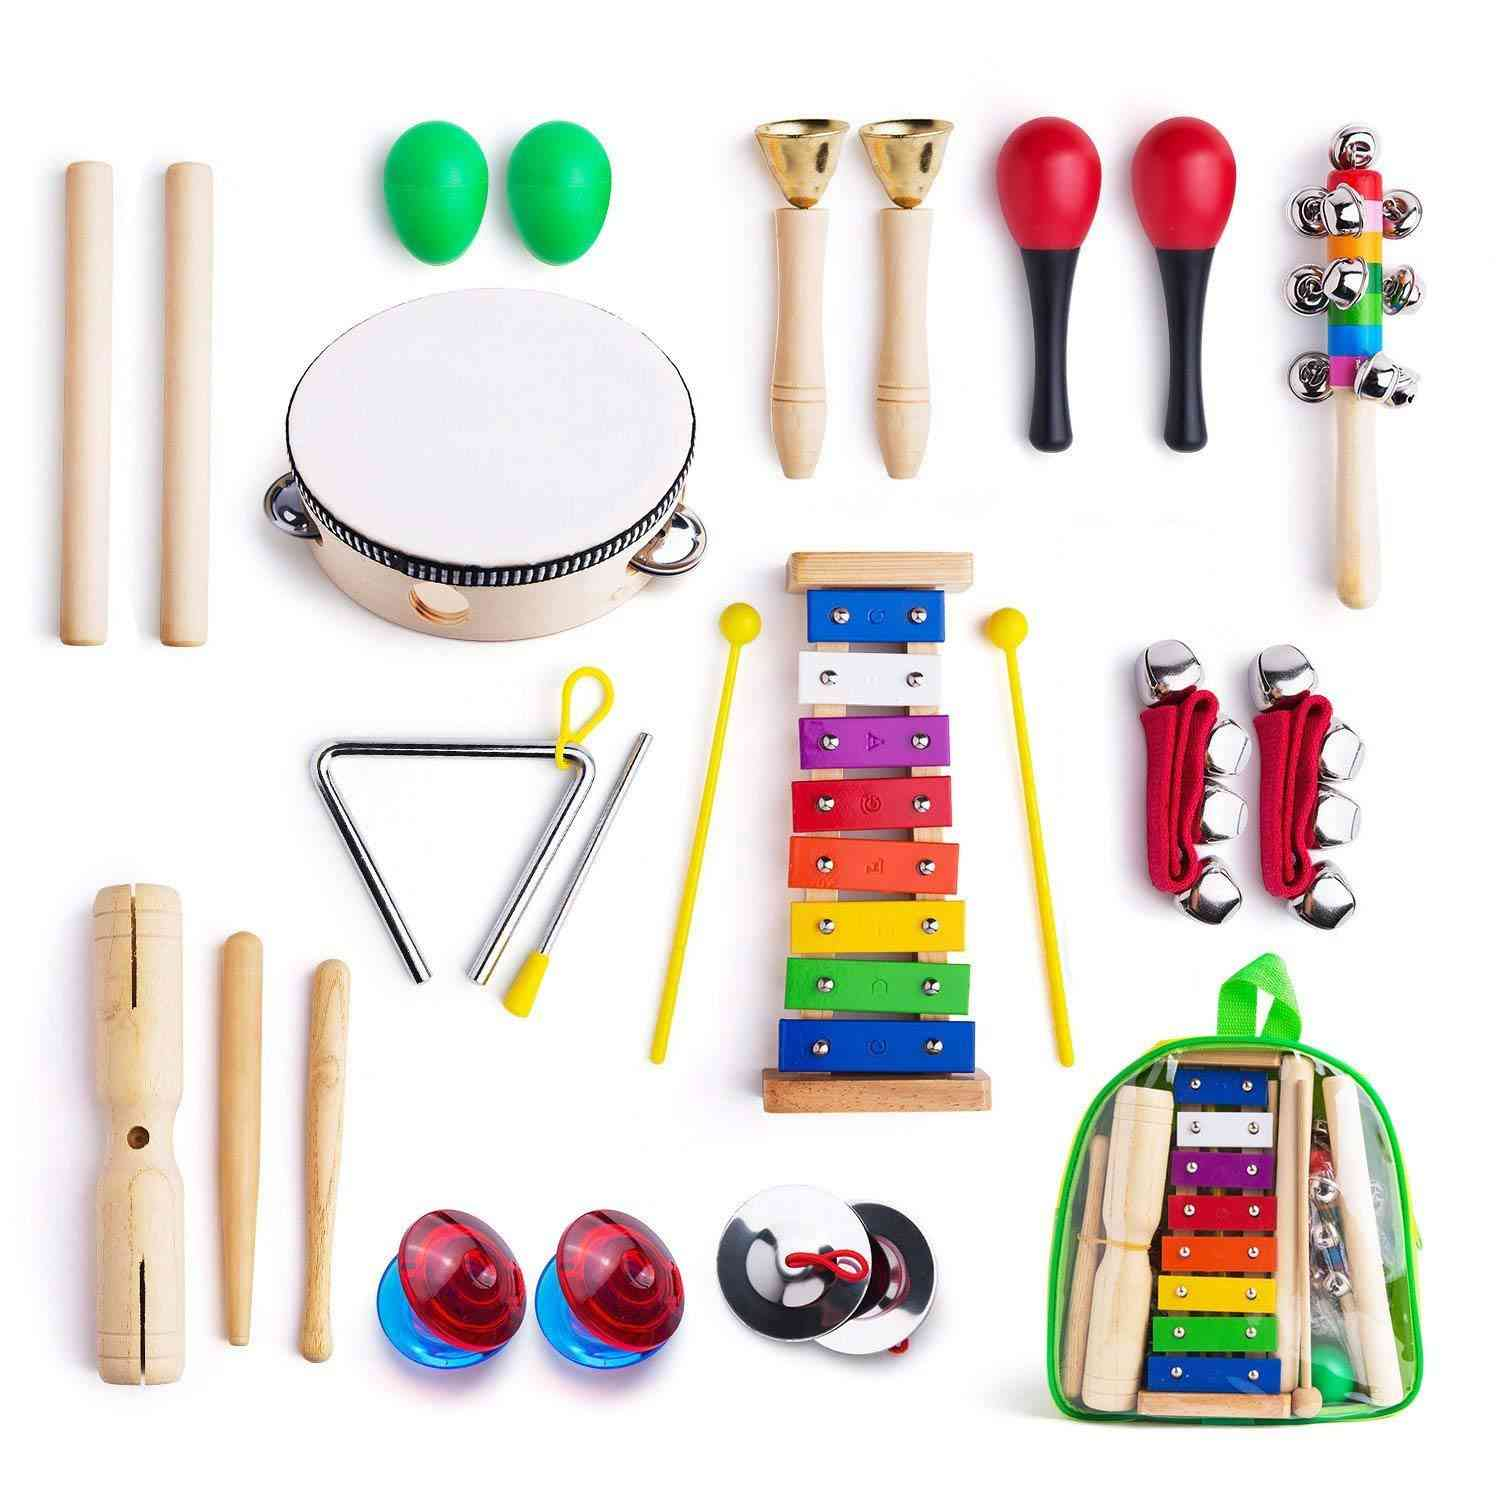 12 In 1 Percussion Toy Set-wooden Musical Instruments For Toddler With Carrying Bag